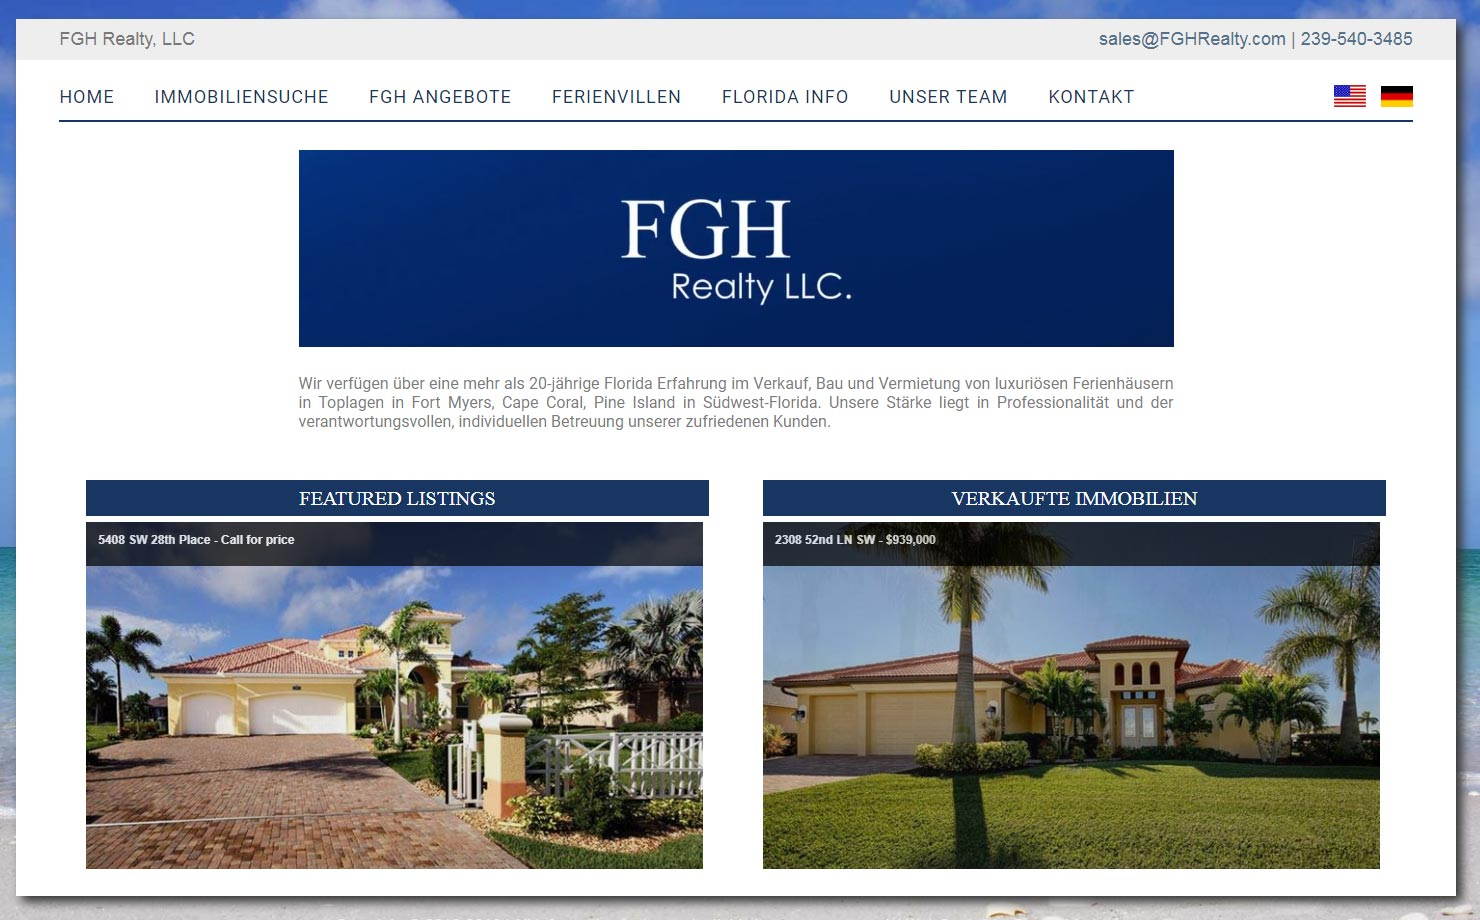 FGH Realty